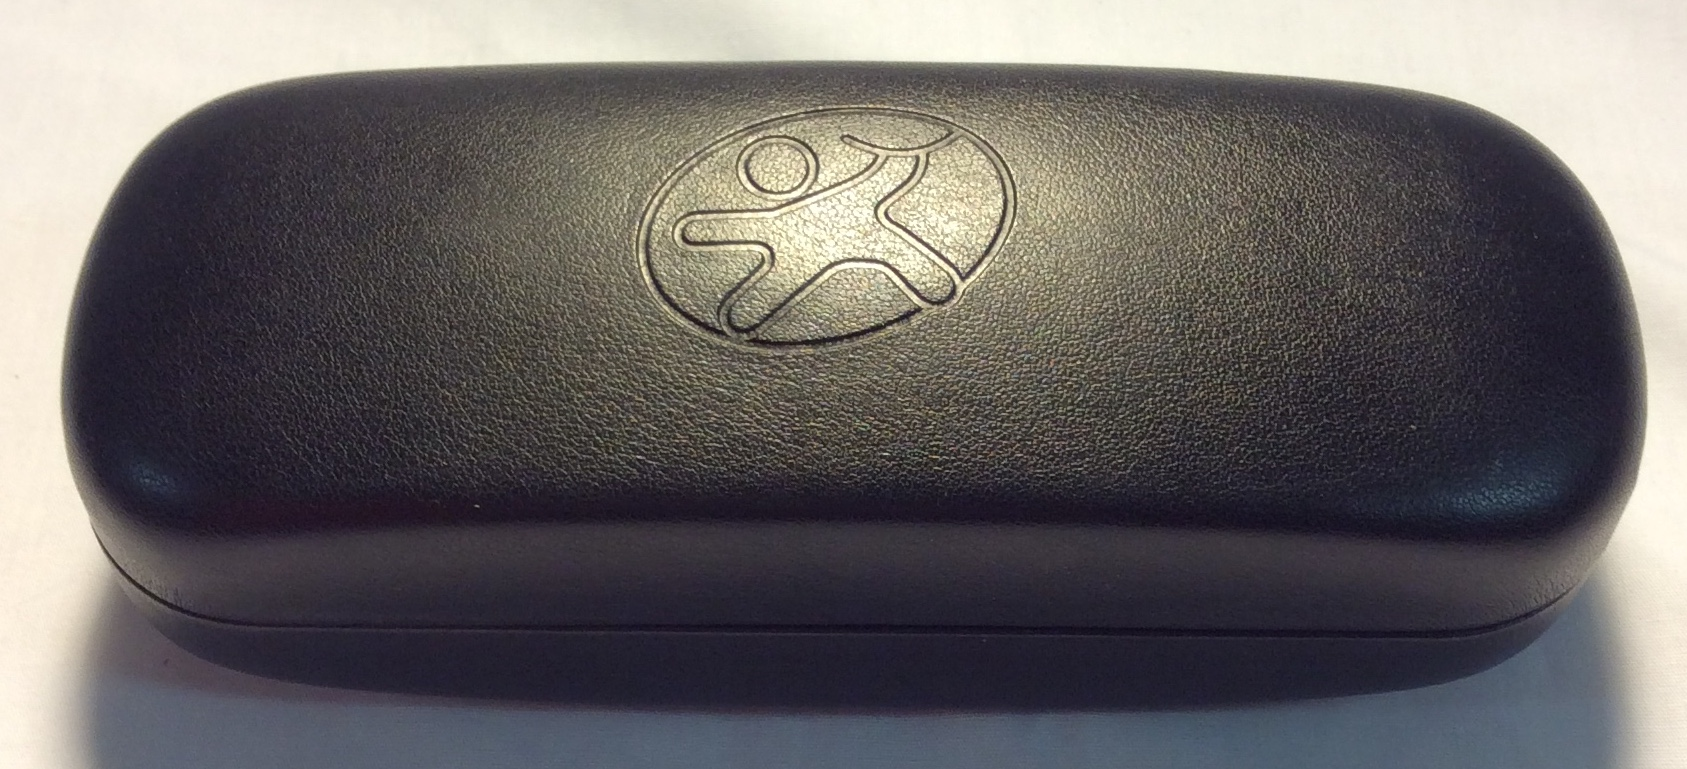 Black leather case with graphic